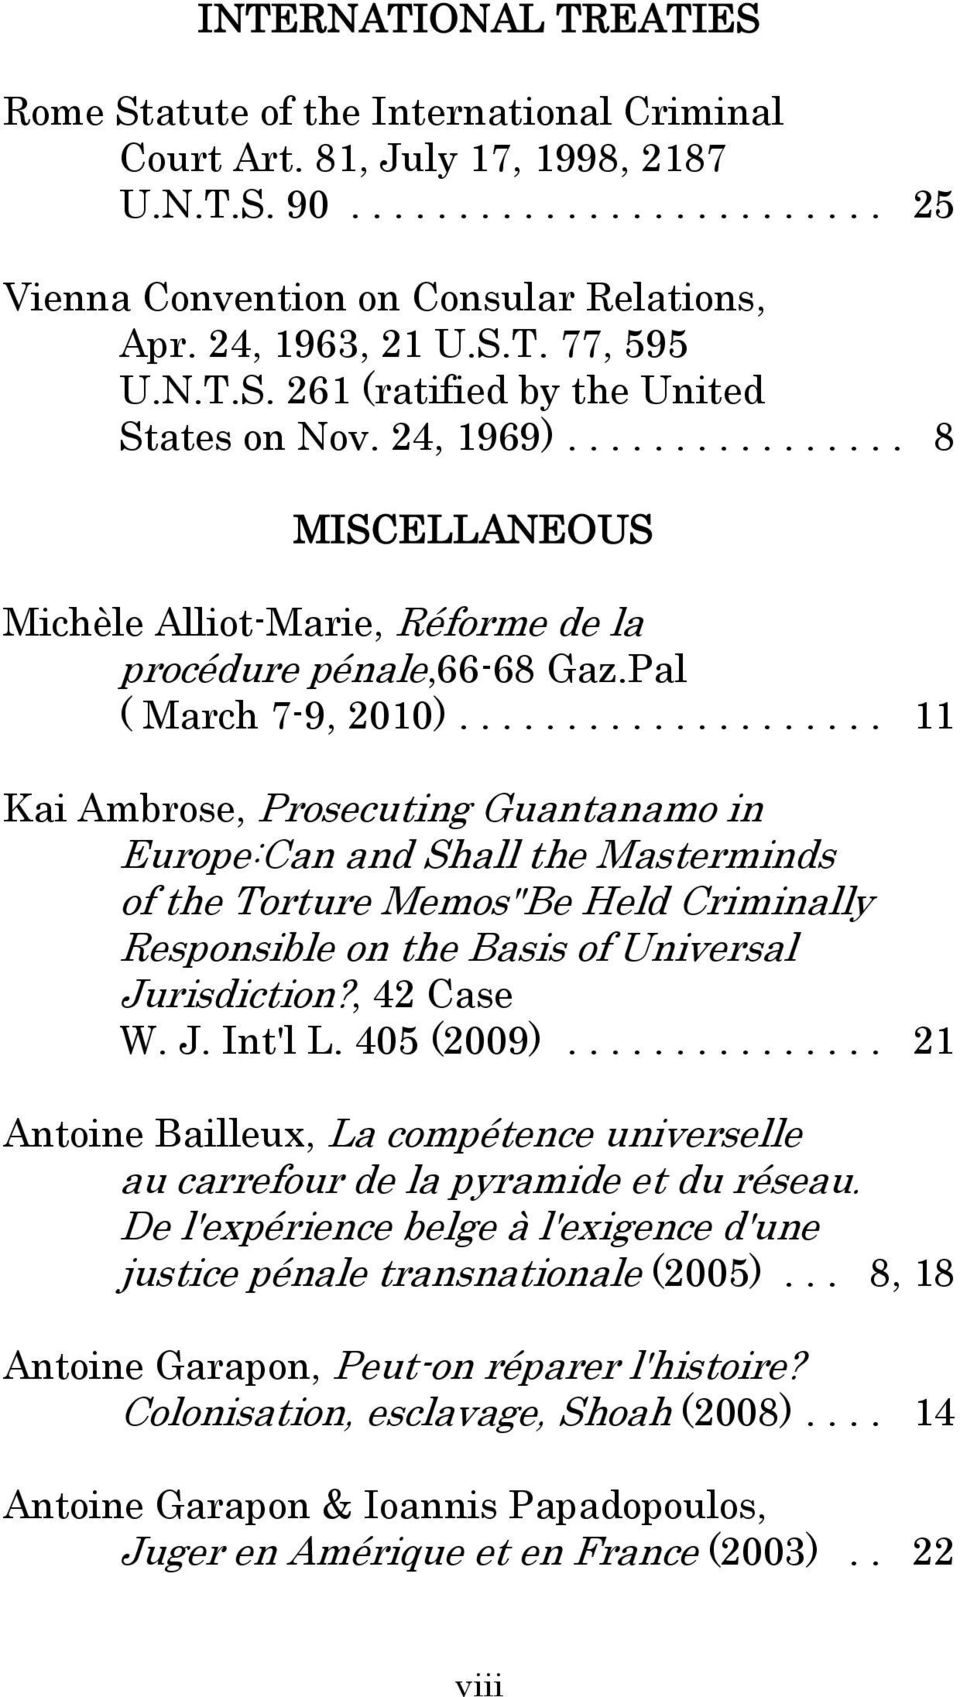 ".. 11 Kai Ambrose, Prosecuting Guantanamo in Europe:Can and Shall the Masterminds of the Torture Memos""Be Held Criminally Responsible on the Basis of Universal Jurisdiction?, 42 Case W. J. Int'l L."